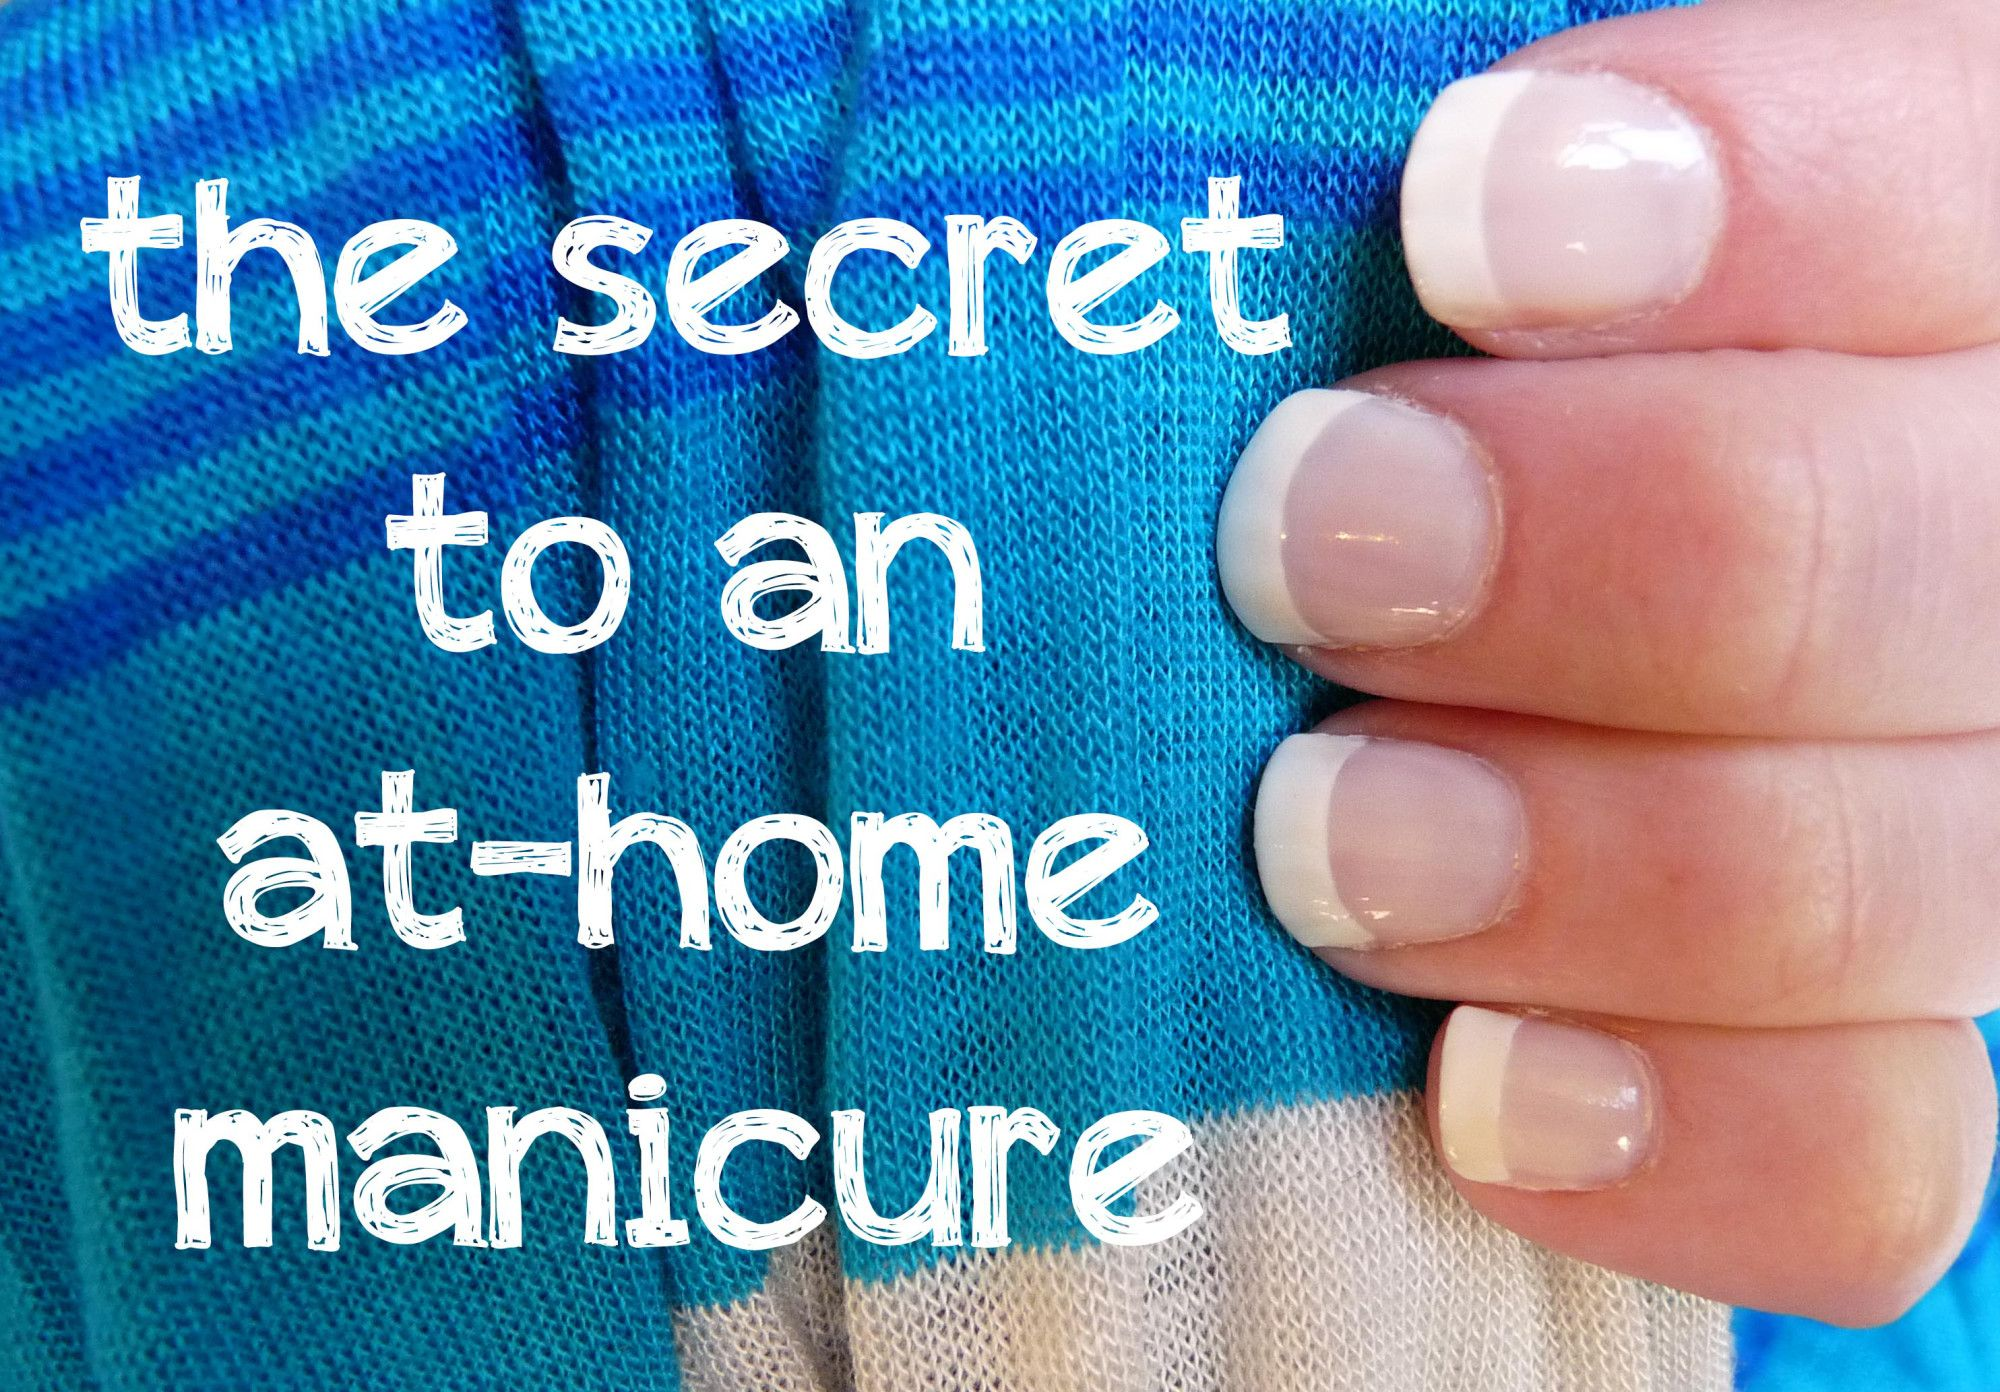 How to give yourself a professional manicure this really works i how to do a professional manicure at home tried this out this weekende best way so far to do an at home manicure solutioingenieria Gallery